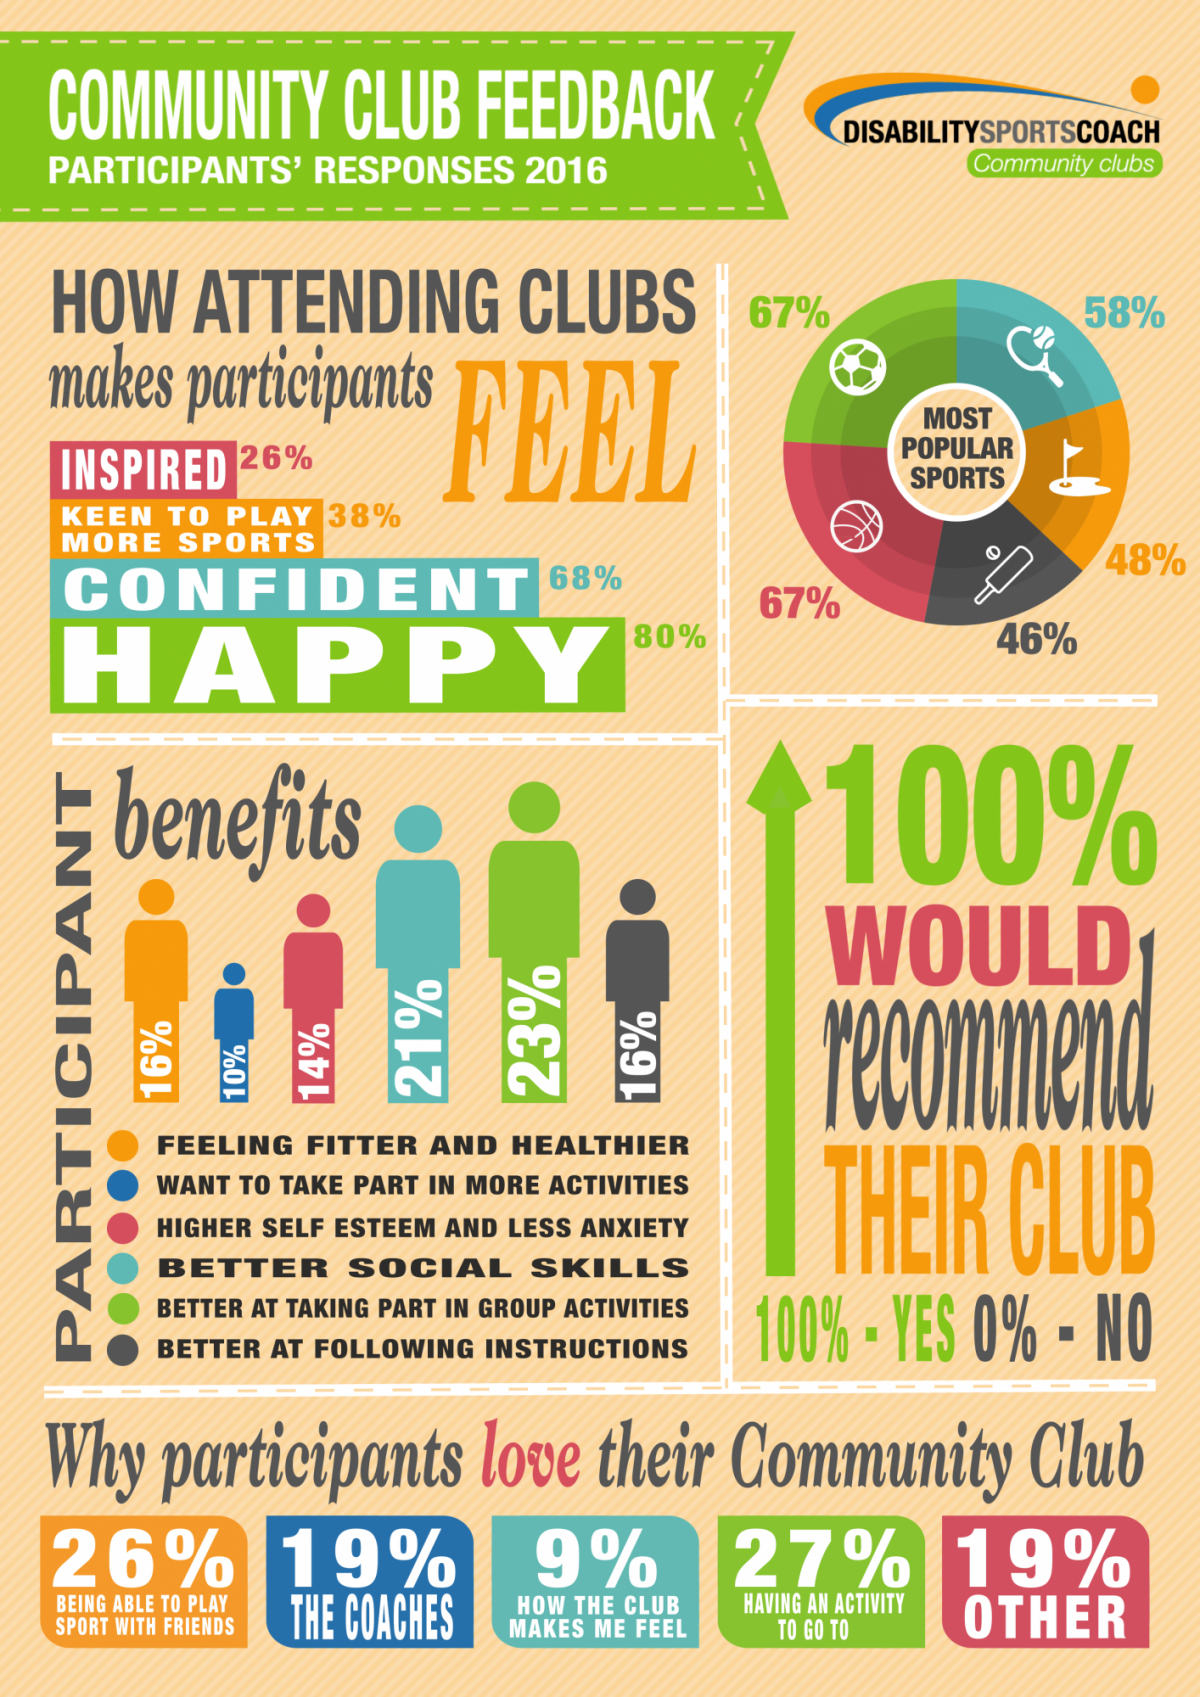 Disability Sports Coach Infographic Wider Benefits to Community Clubs